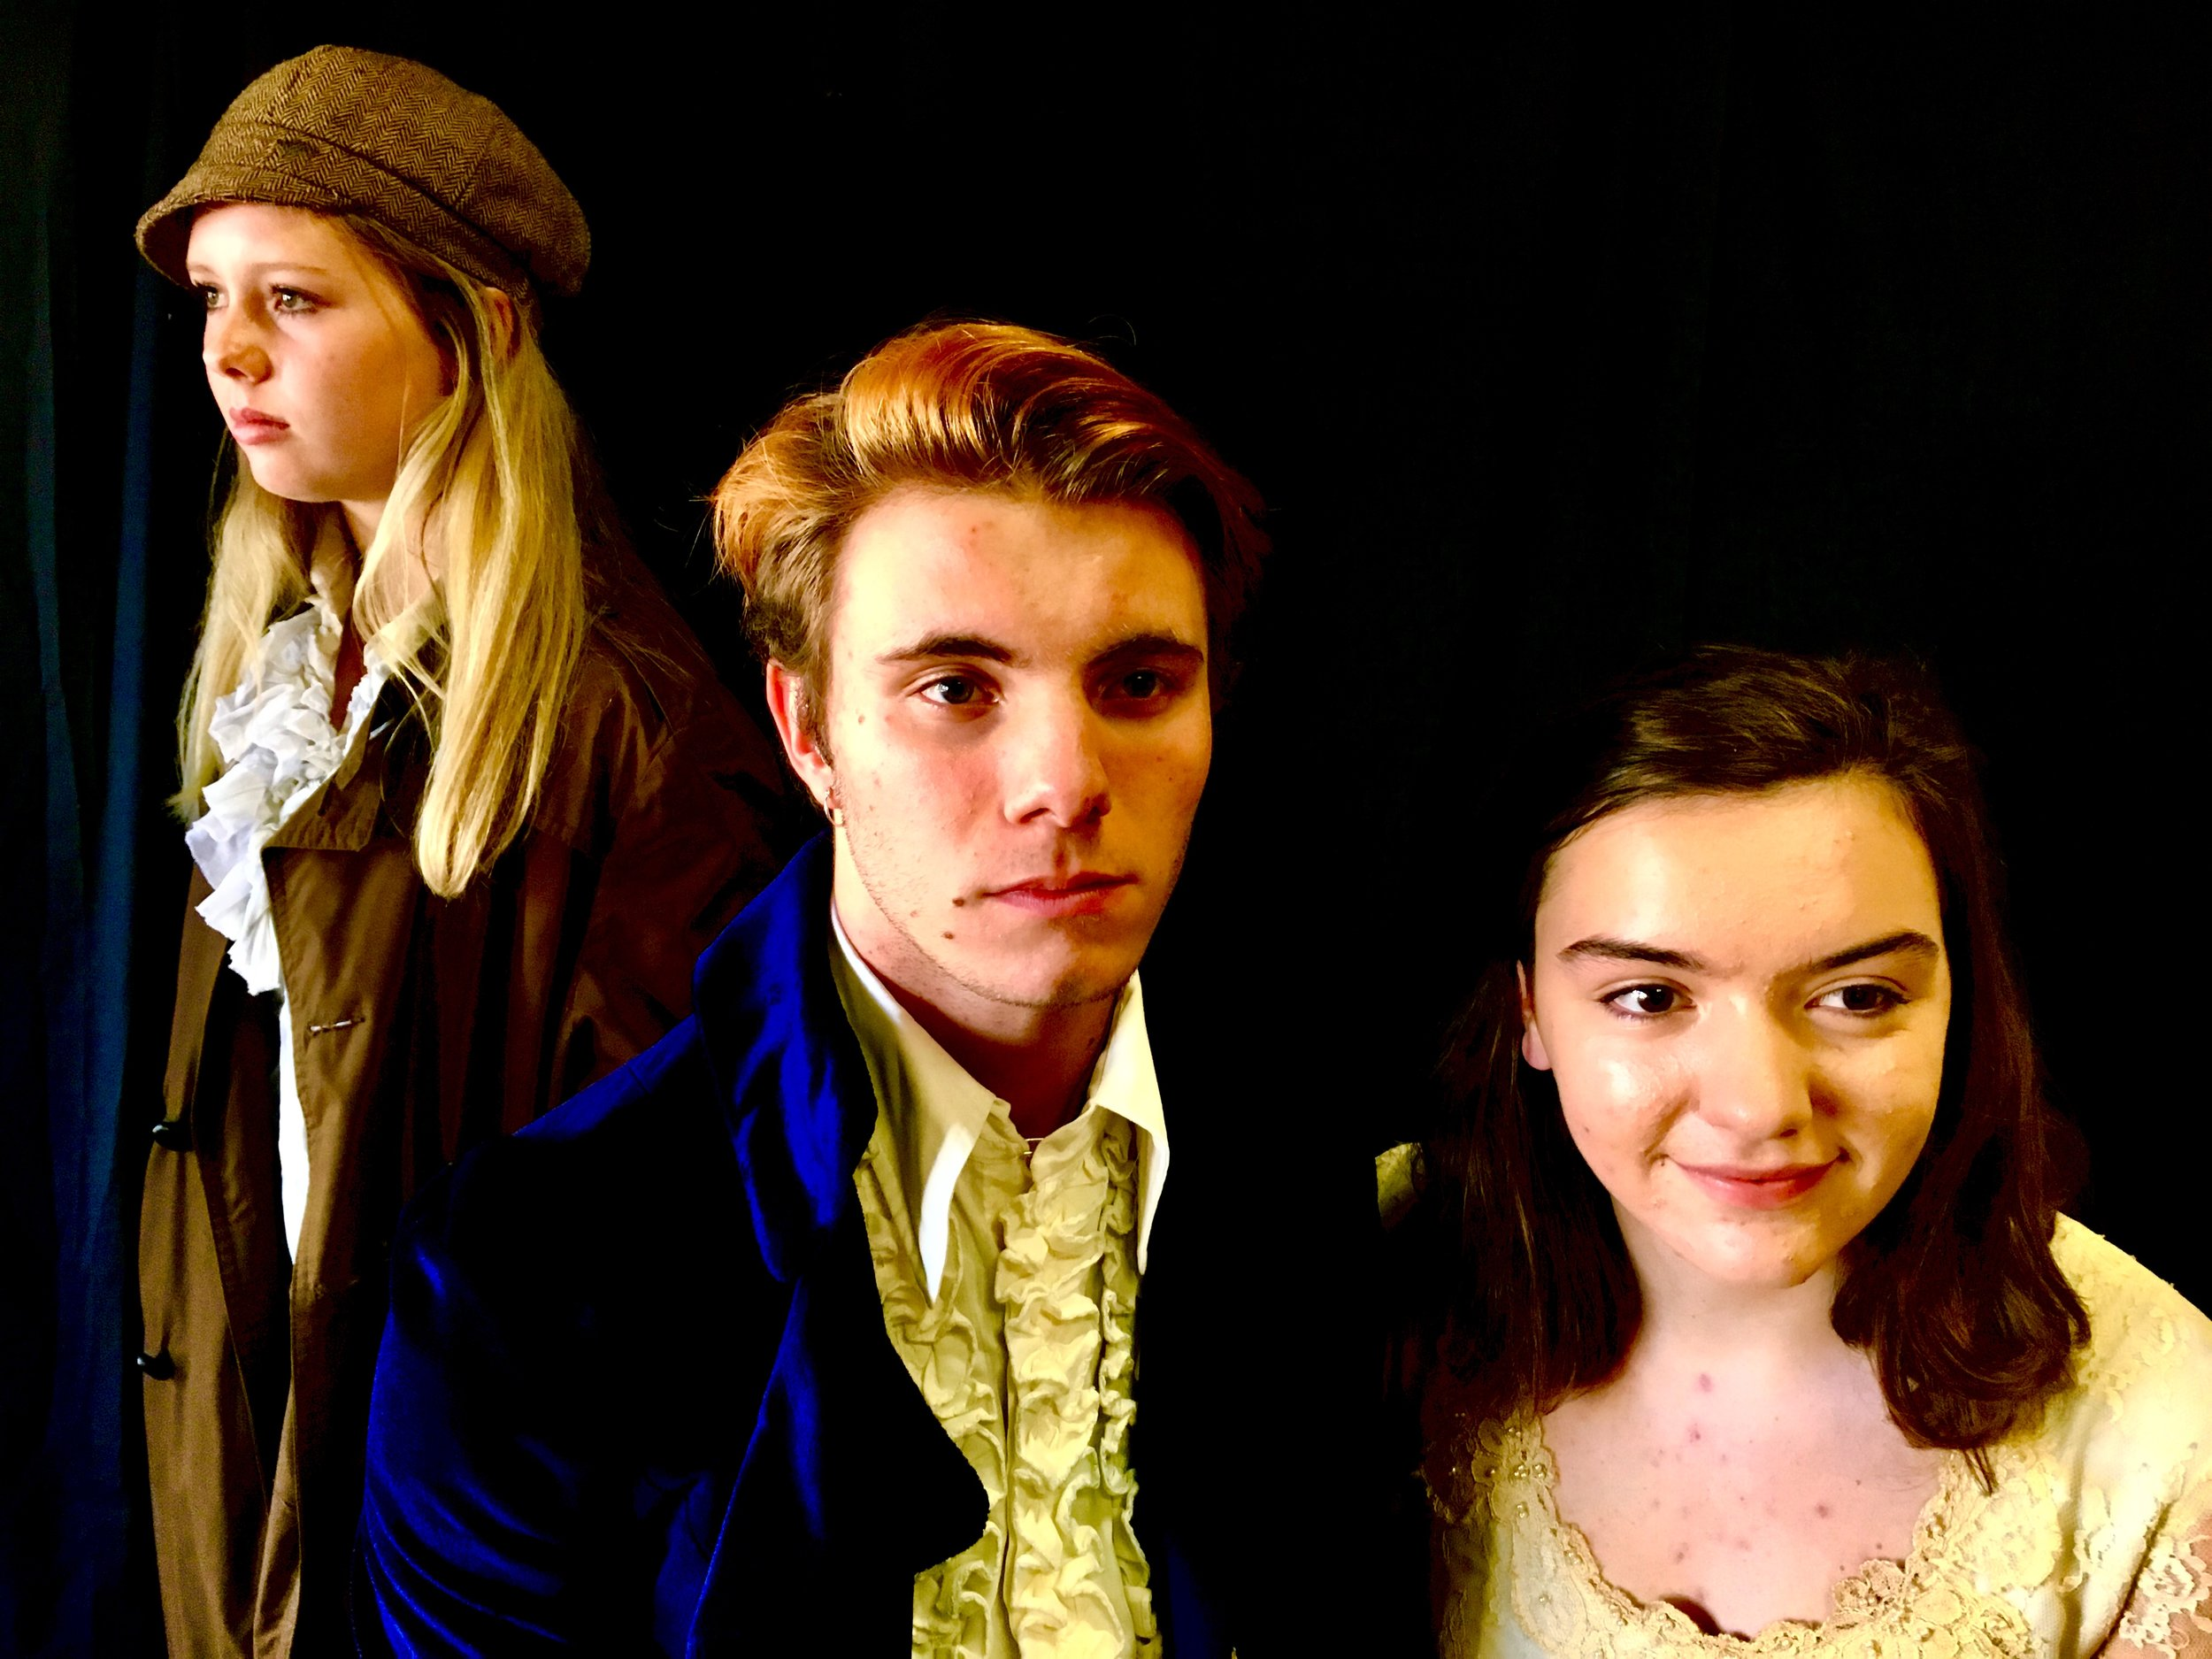 Ellie Bednarz as Eponine, Joshua Martinez as Marius, Olivia Hoover as Cosette.